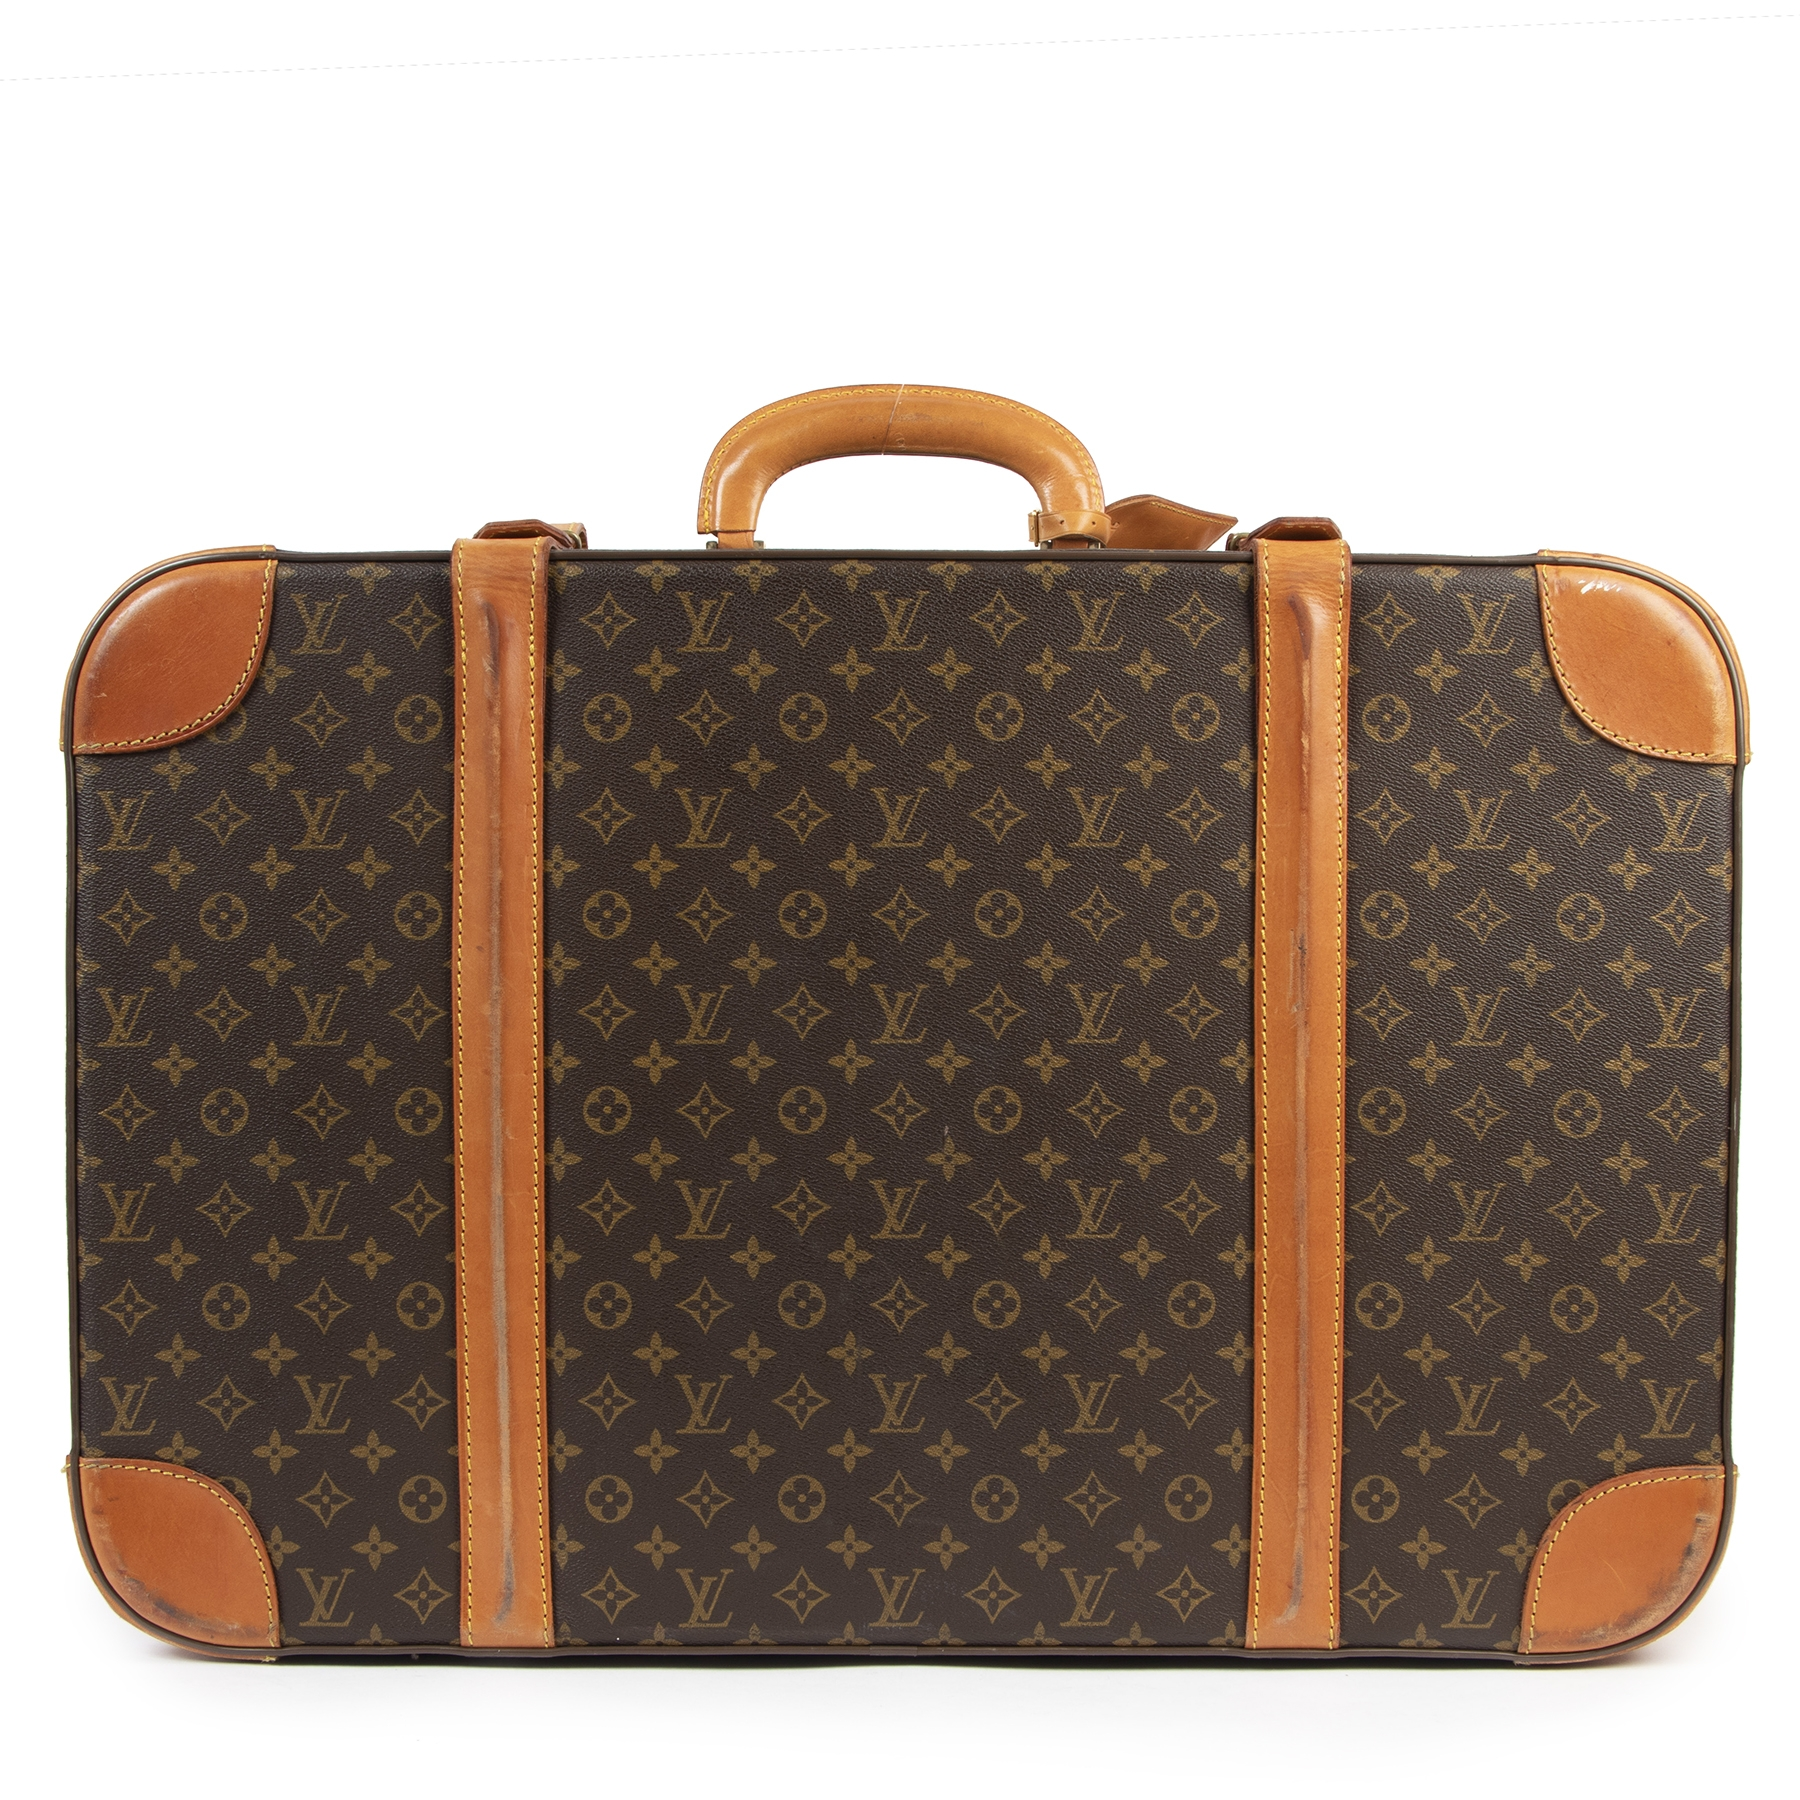 Louis Vuitton Stratos 70 Monogram Suitcase for the best price at Labellov